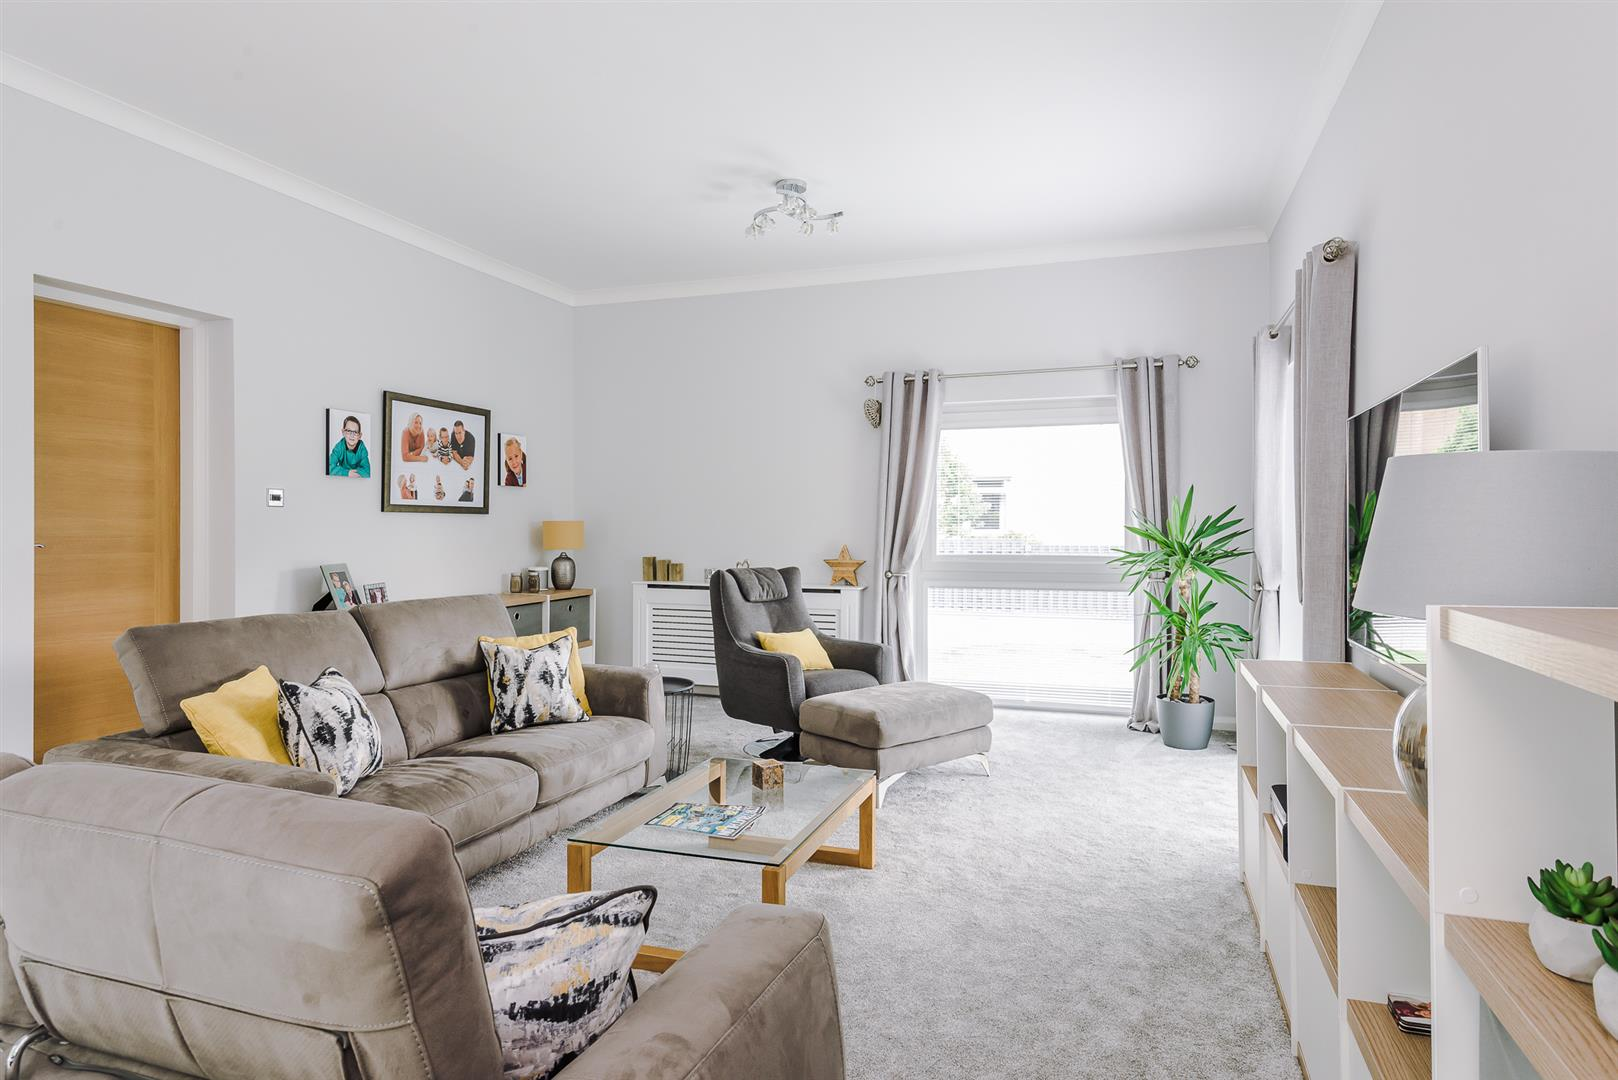 4 bedroom detached house For Sale in Bolton - DSC_6391.jpg.